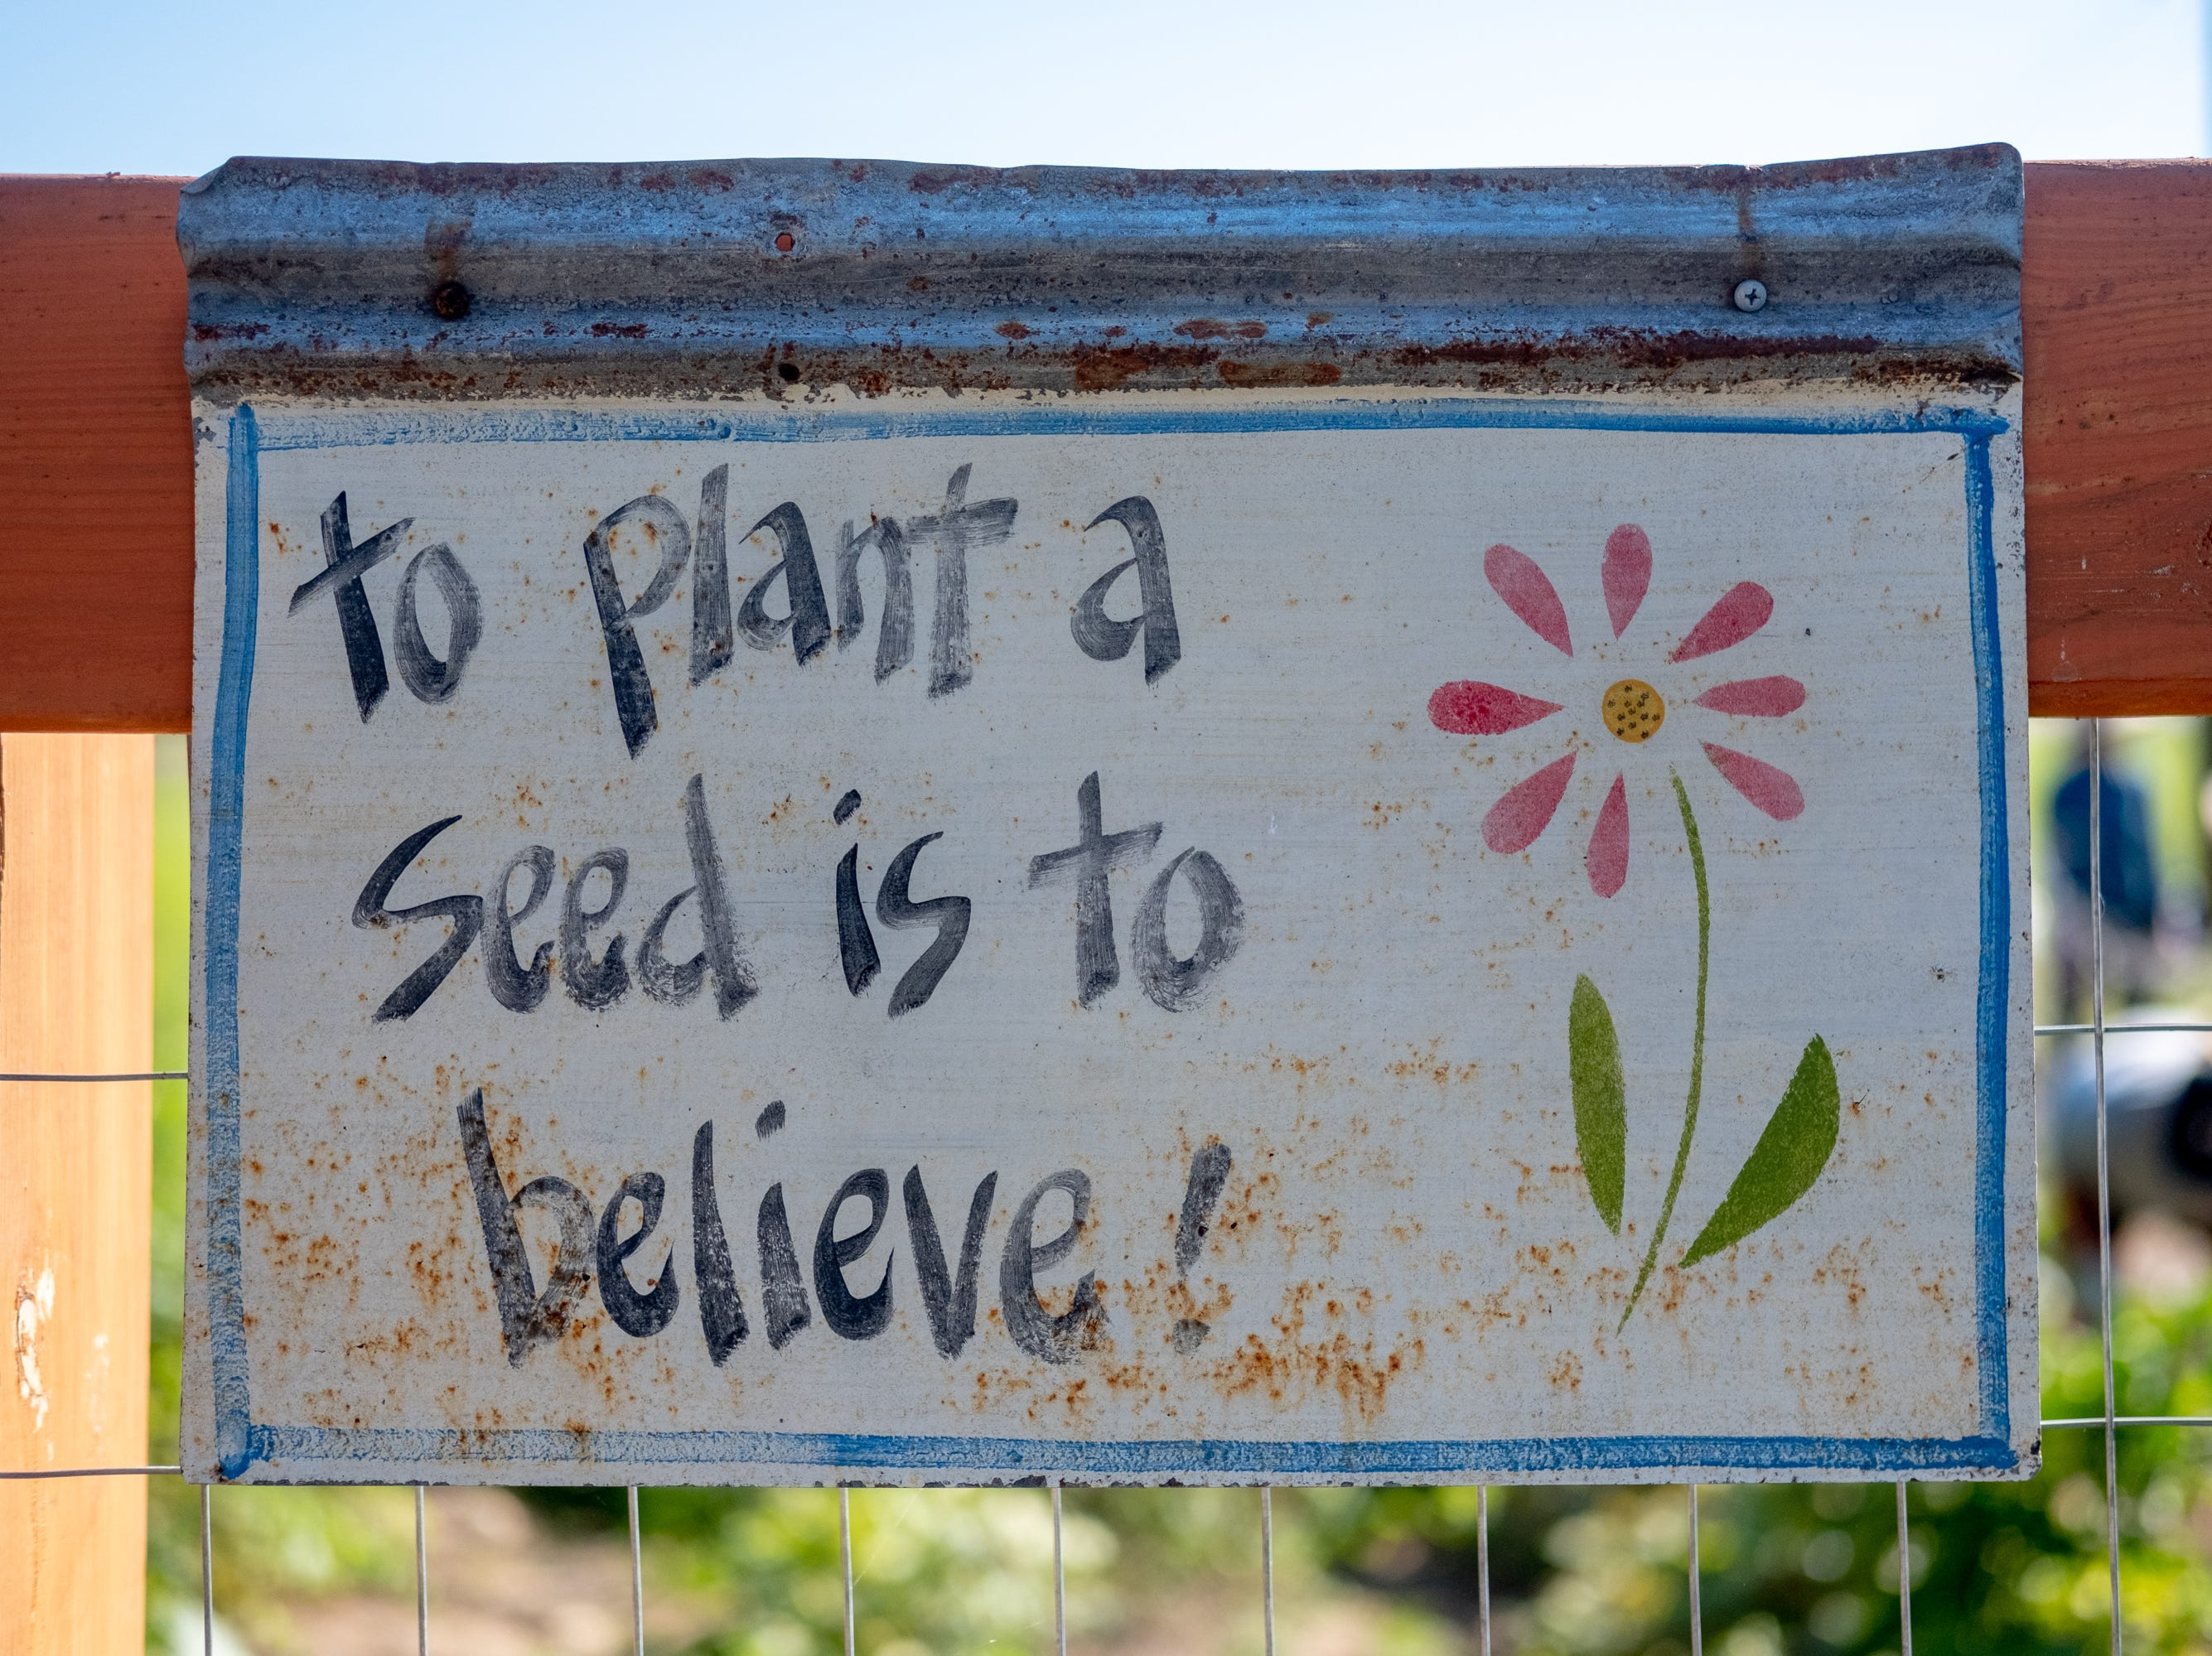 A hand painted sign hangs over one of the entrances to the Epiphany Community Garden in Collierville on Saturday, Sept. 15, 2018.